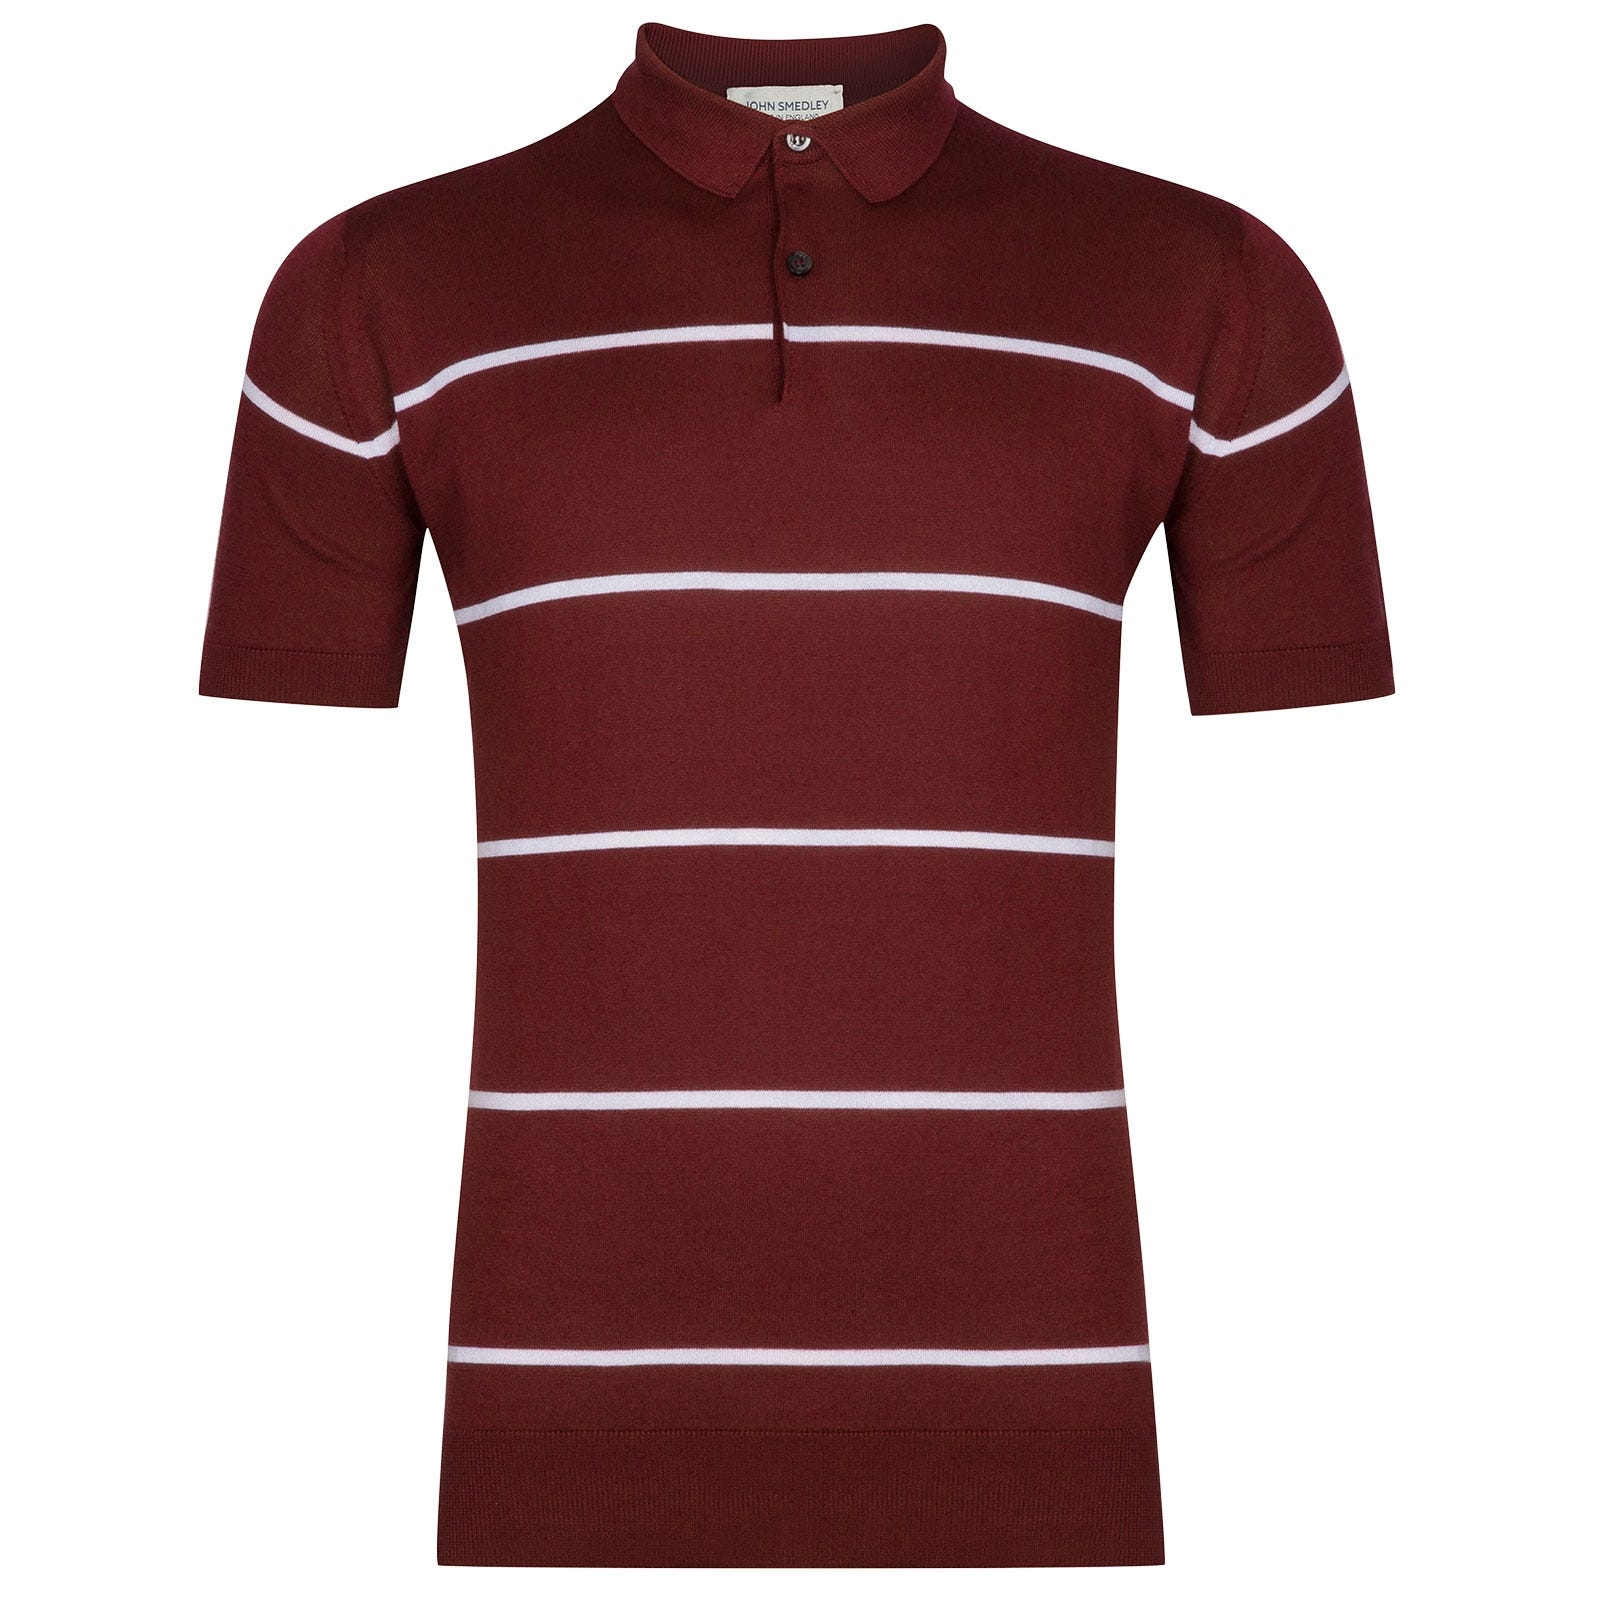 John Smedley Hembury Sea Island Cotton Shirt in Burgundy Grain-M